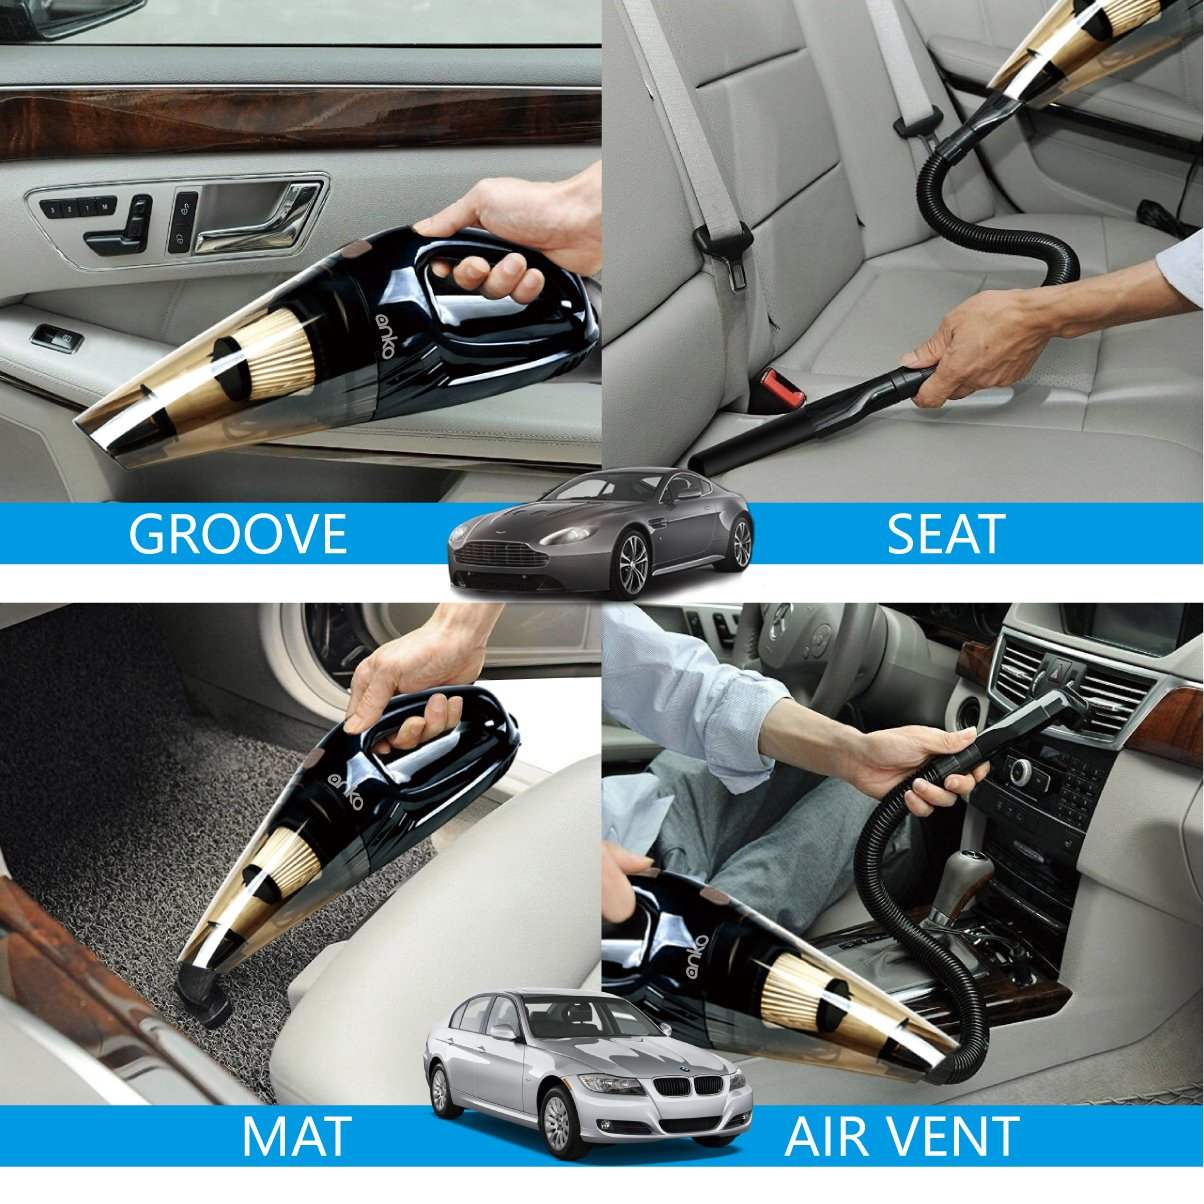 The 9 Best Car Vacuum Cleaners To Buy In 2020 16